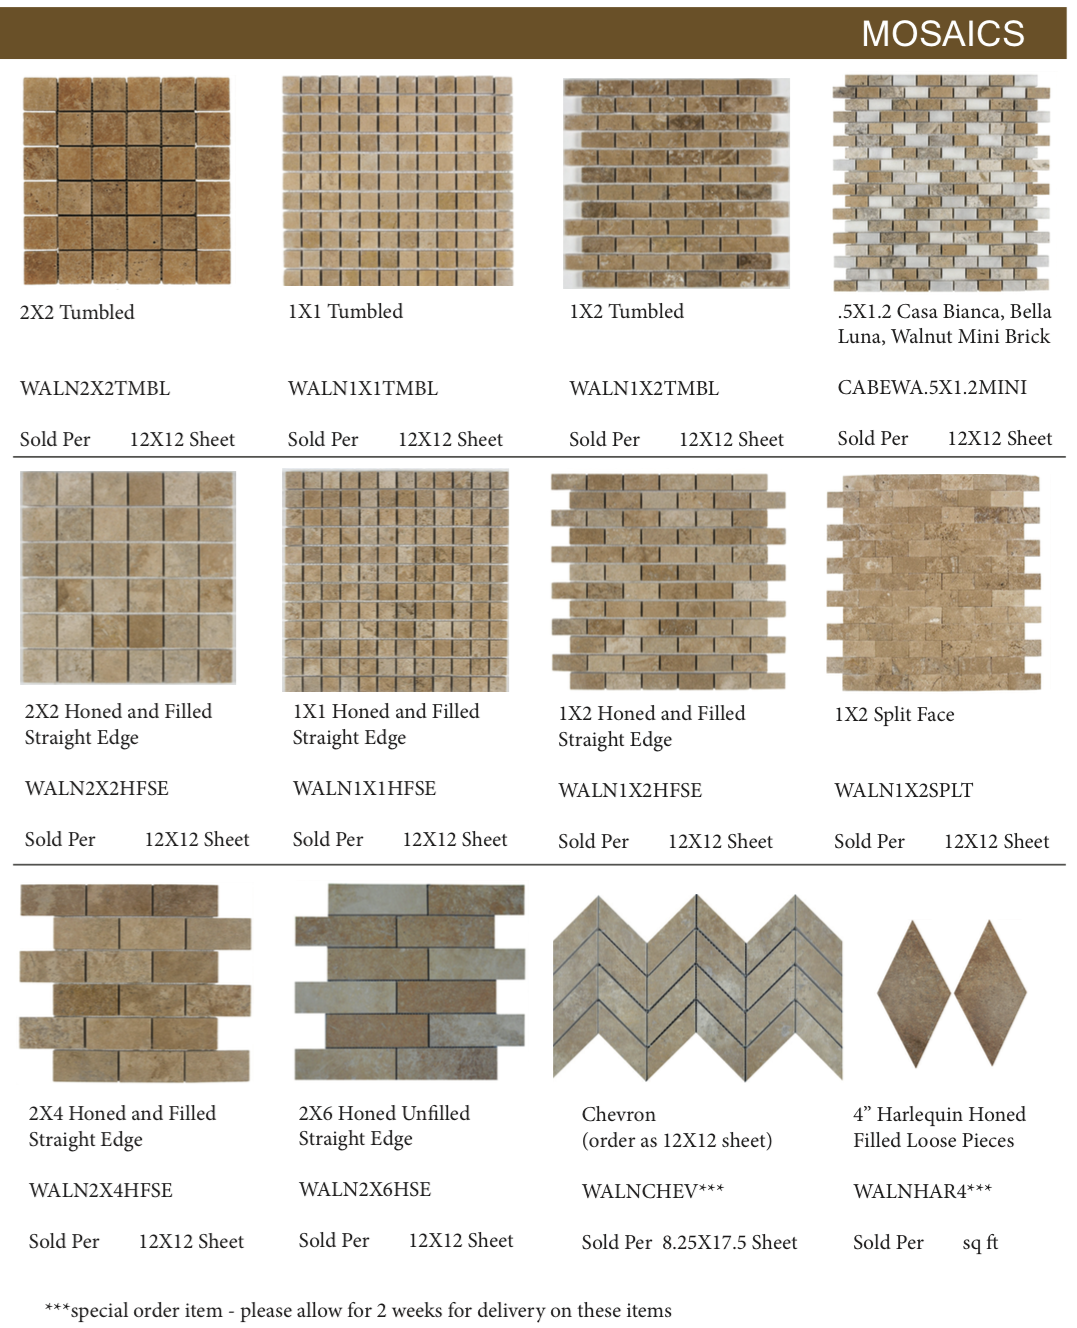 Walnut-Travertine-Mosaics